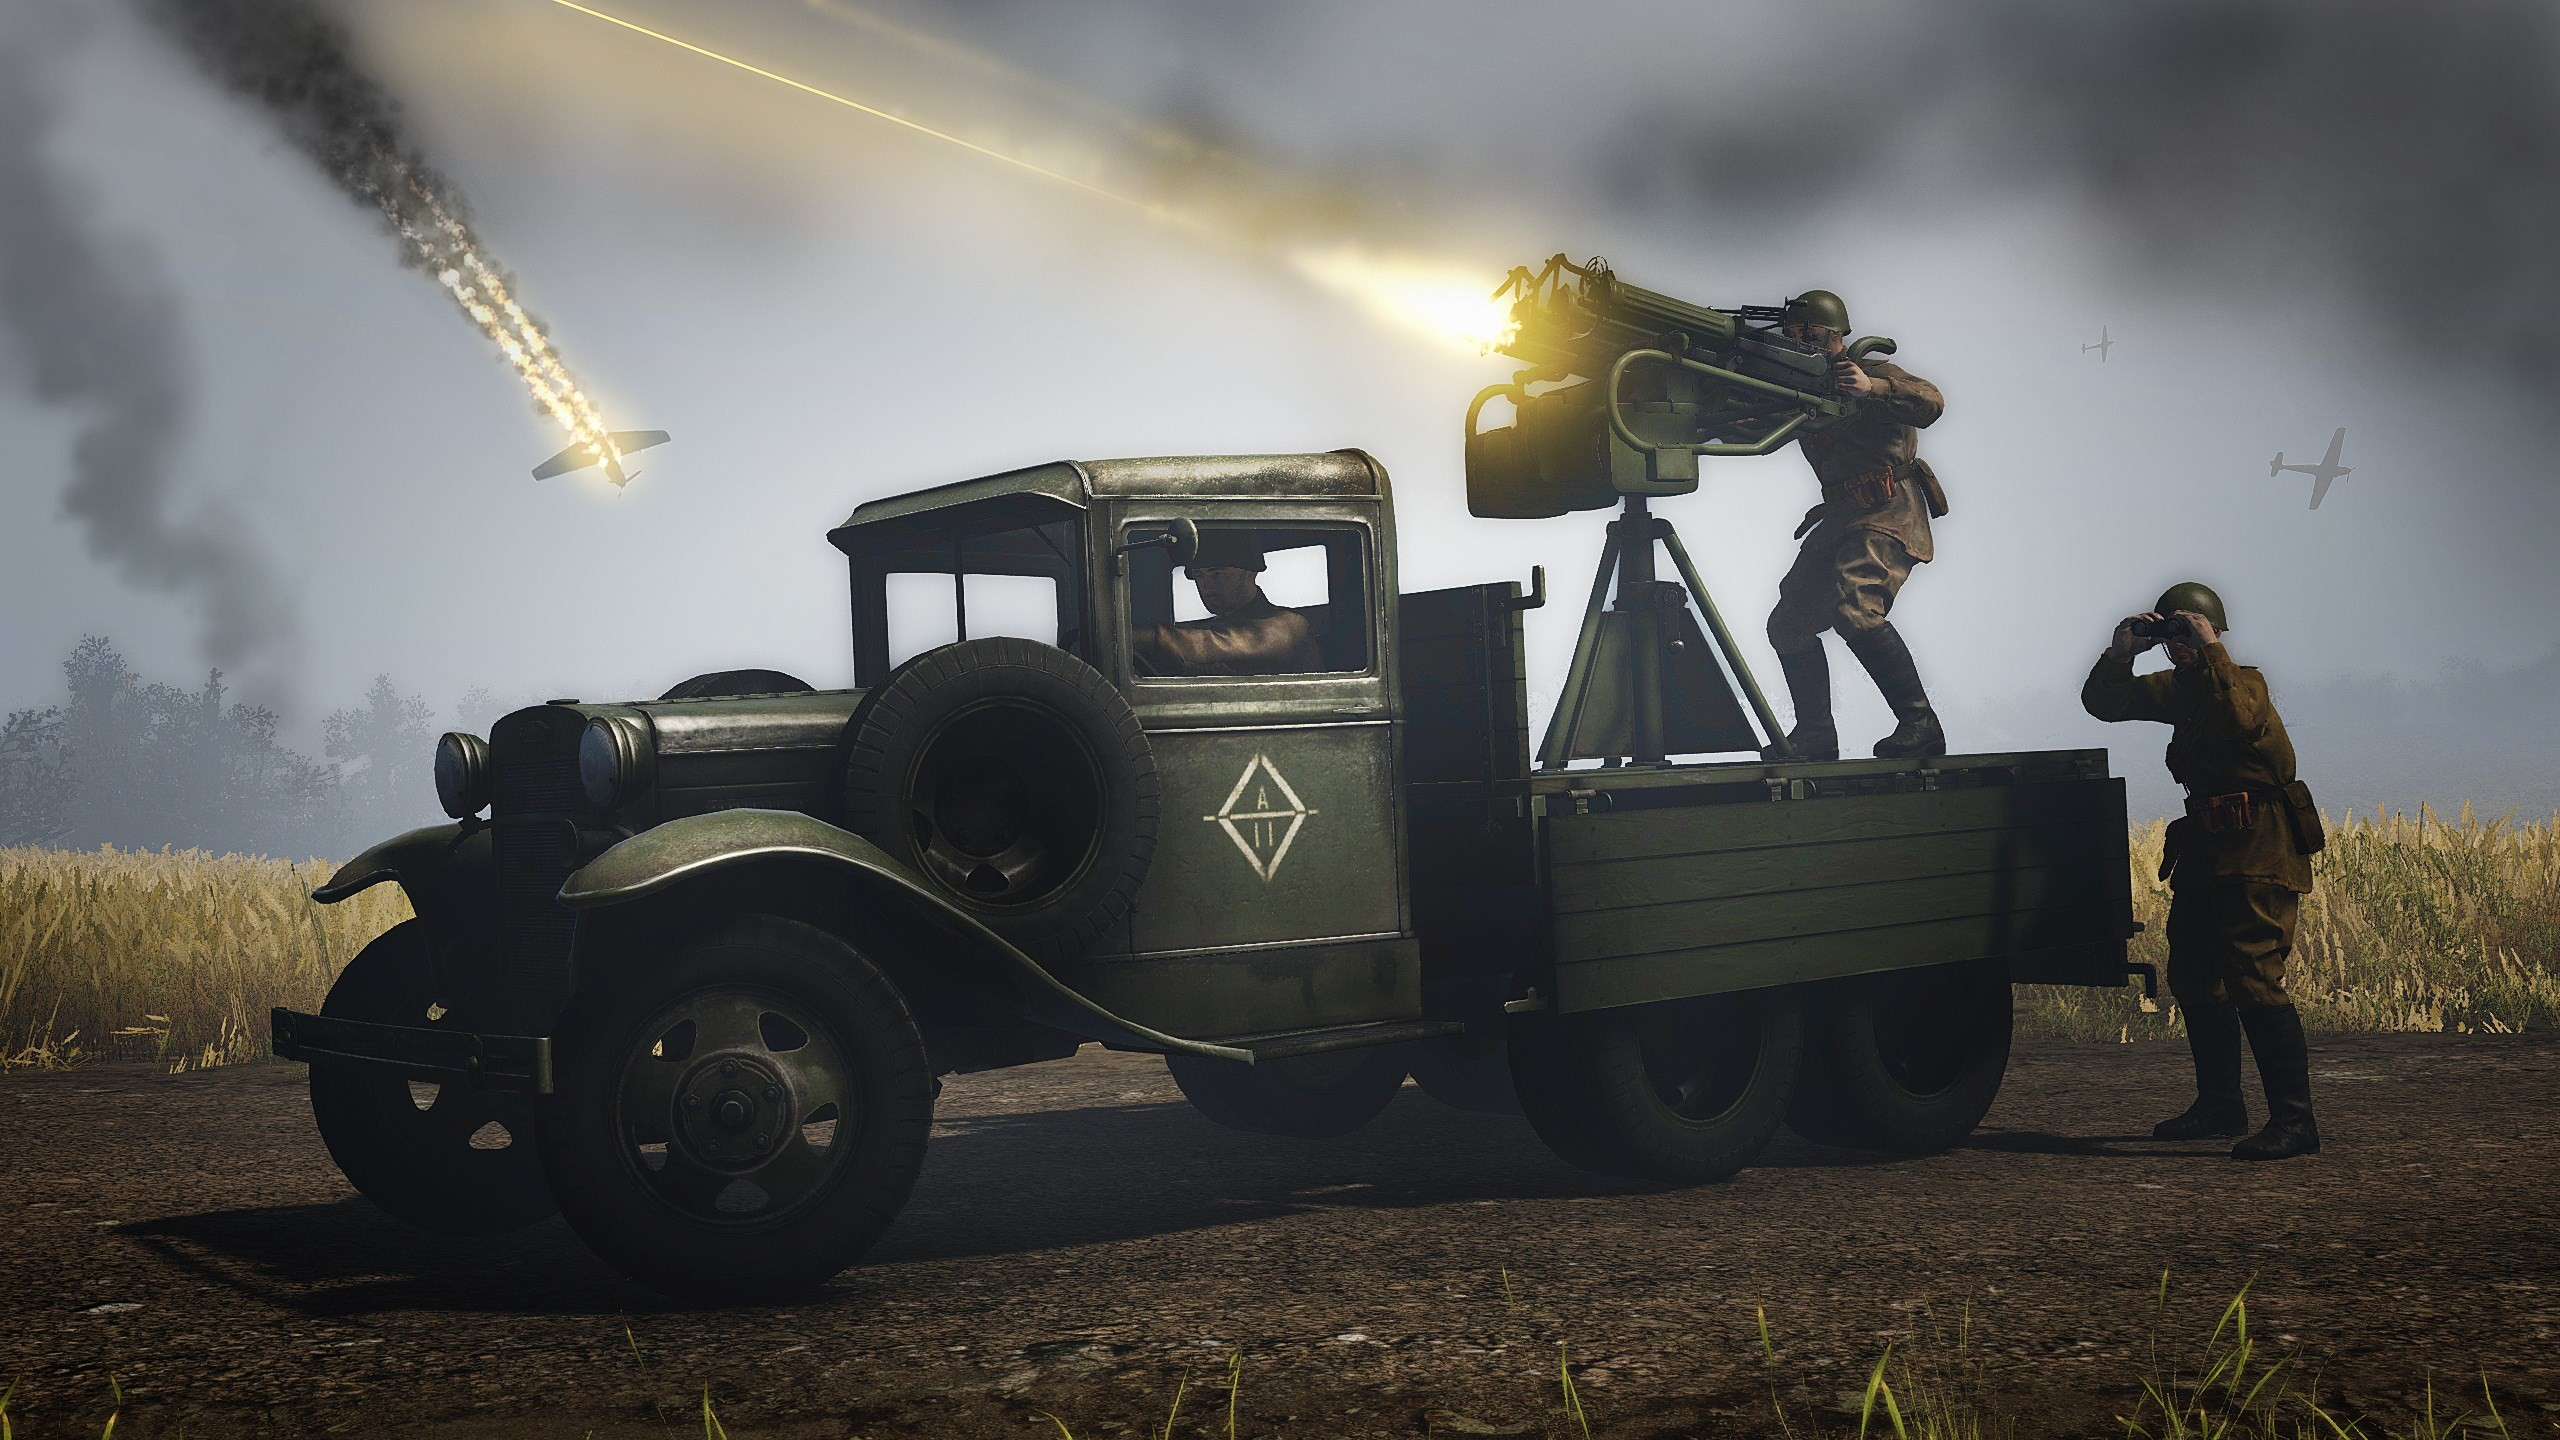 heroes and generals wallpaper free hd widescreen by Fonda Leapman  (2017-03-02